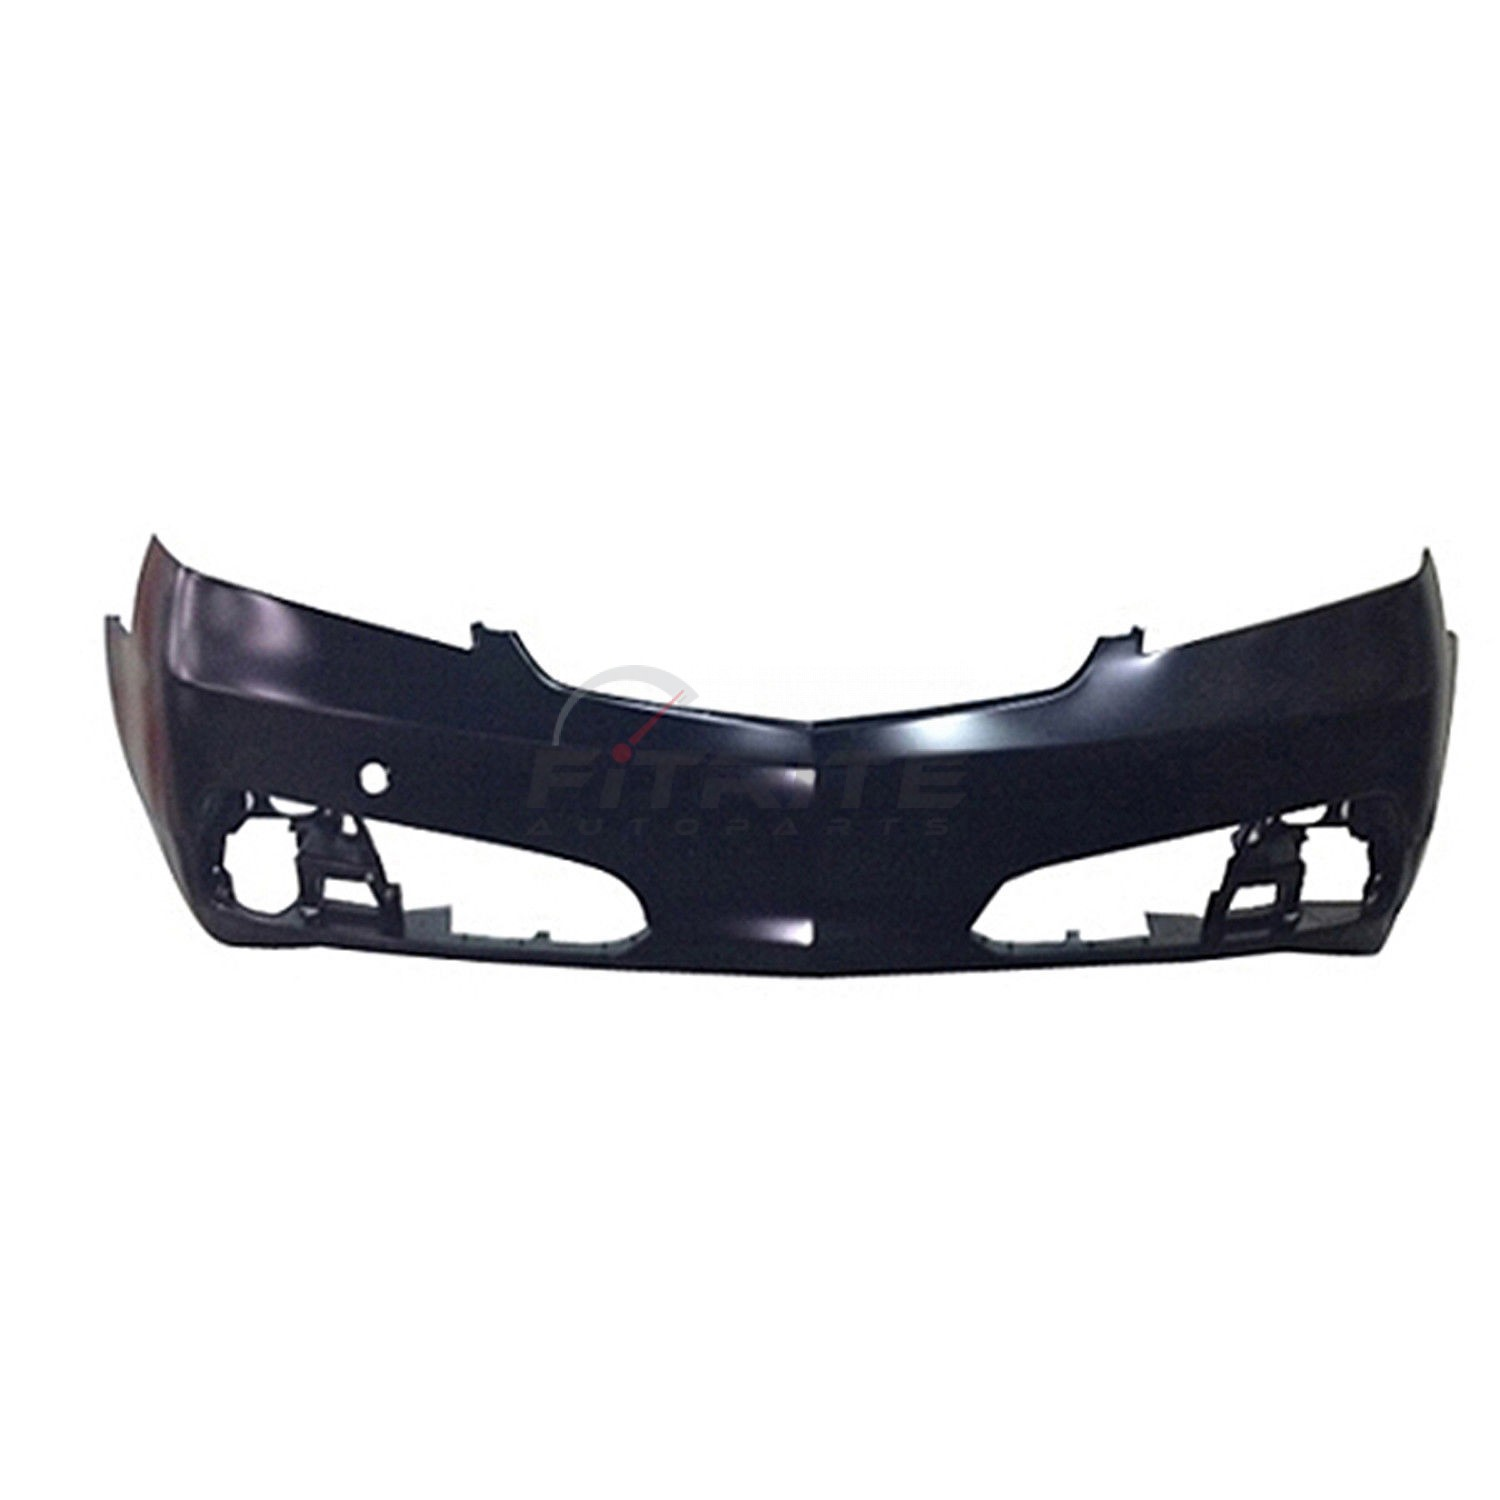 NEW FRONT BUMPER COVER PRIMED FOR 2012-2014 ACURA TL